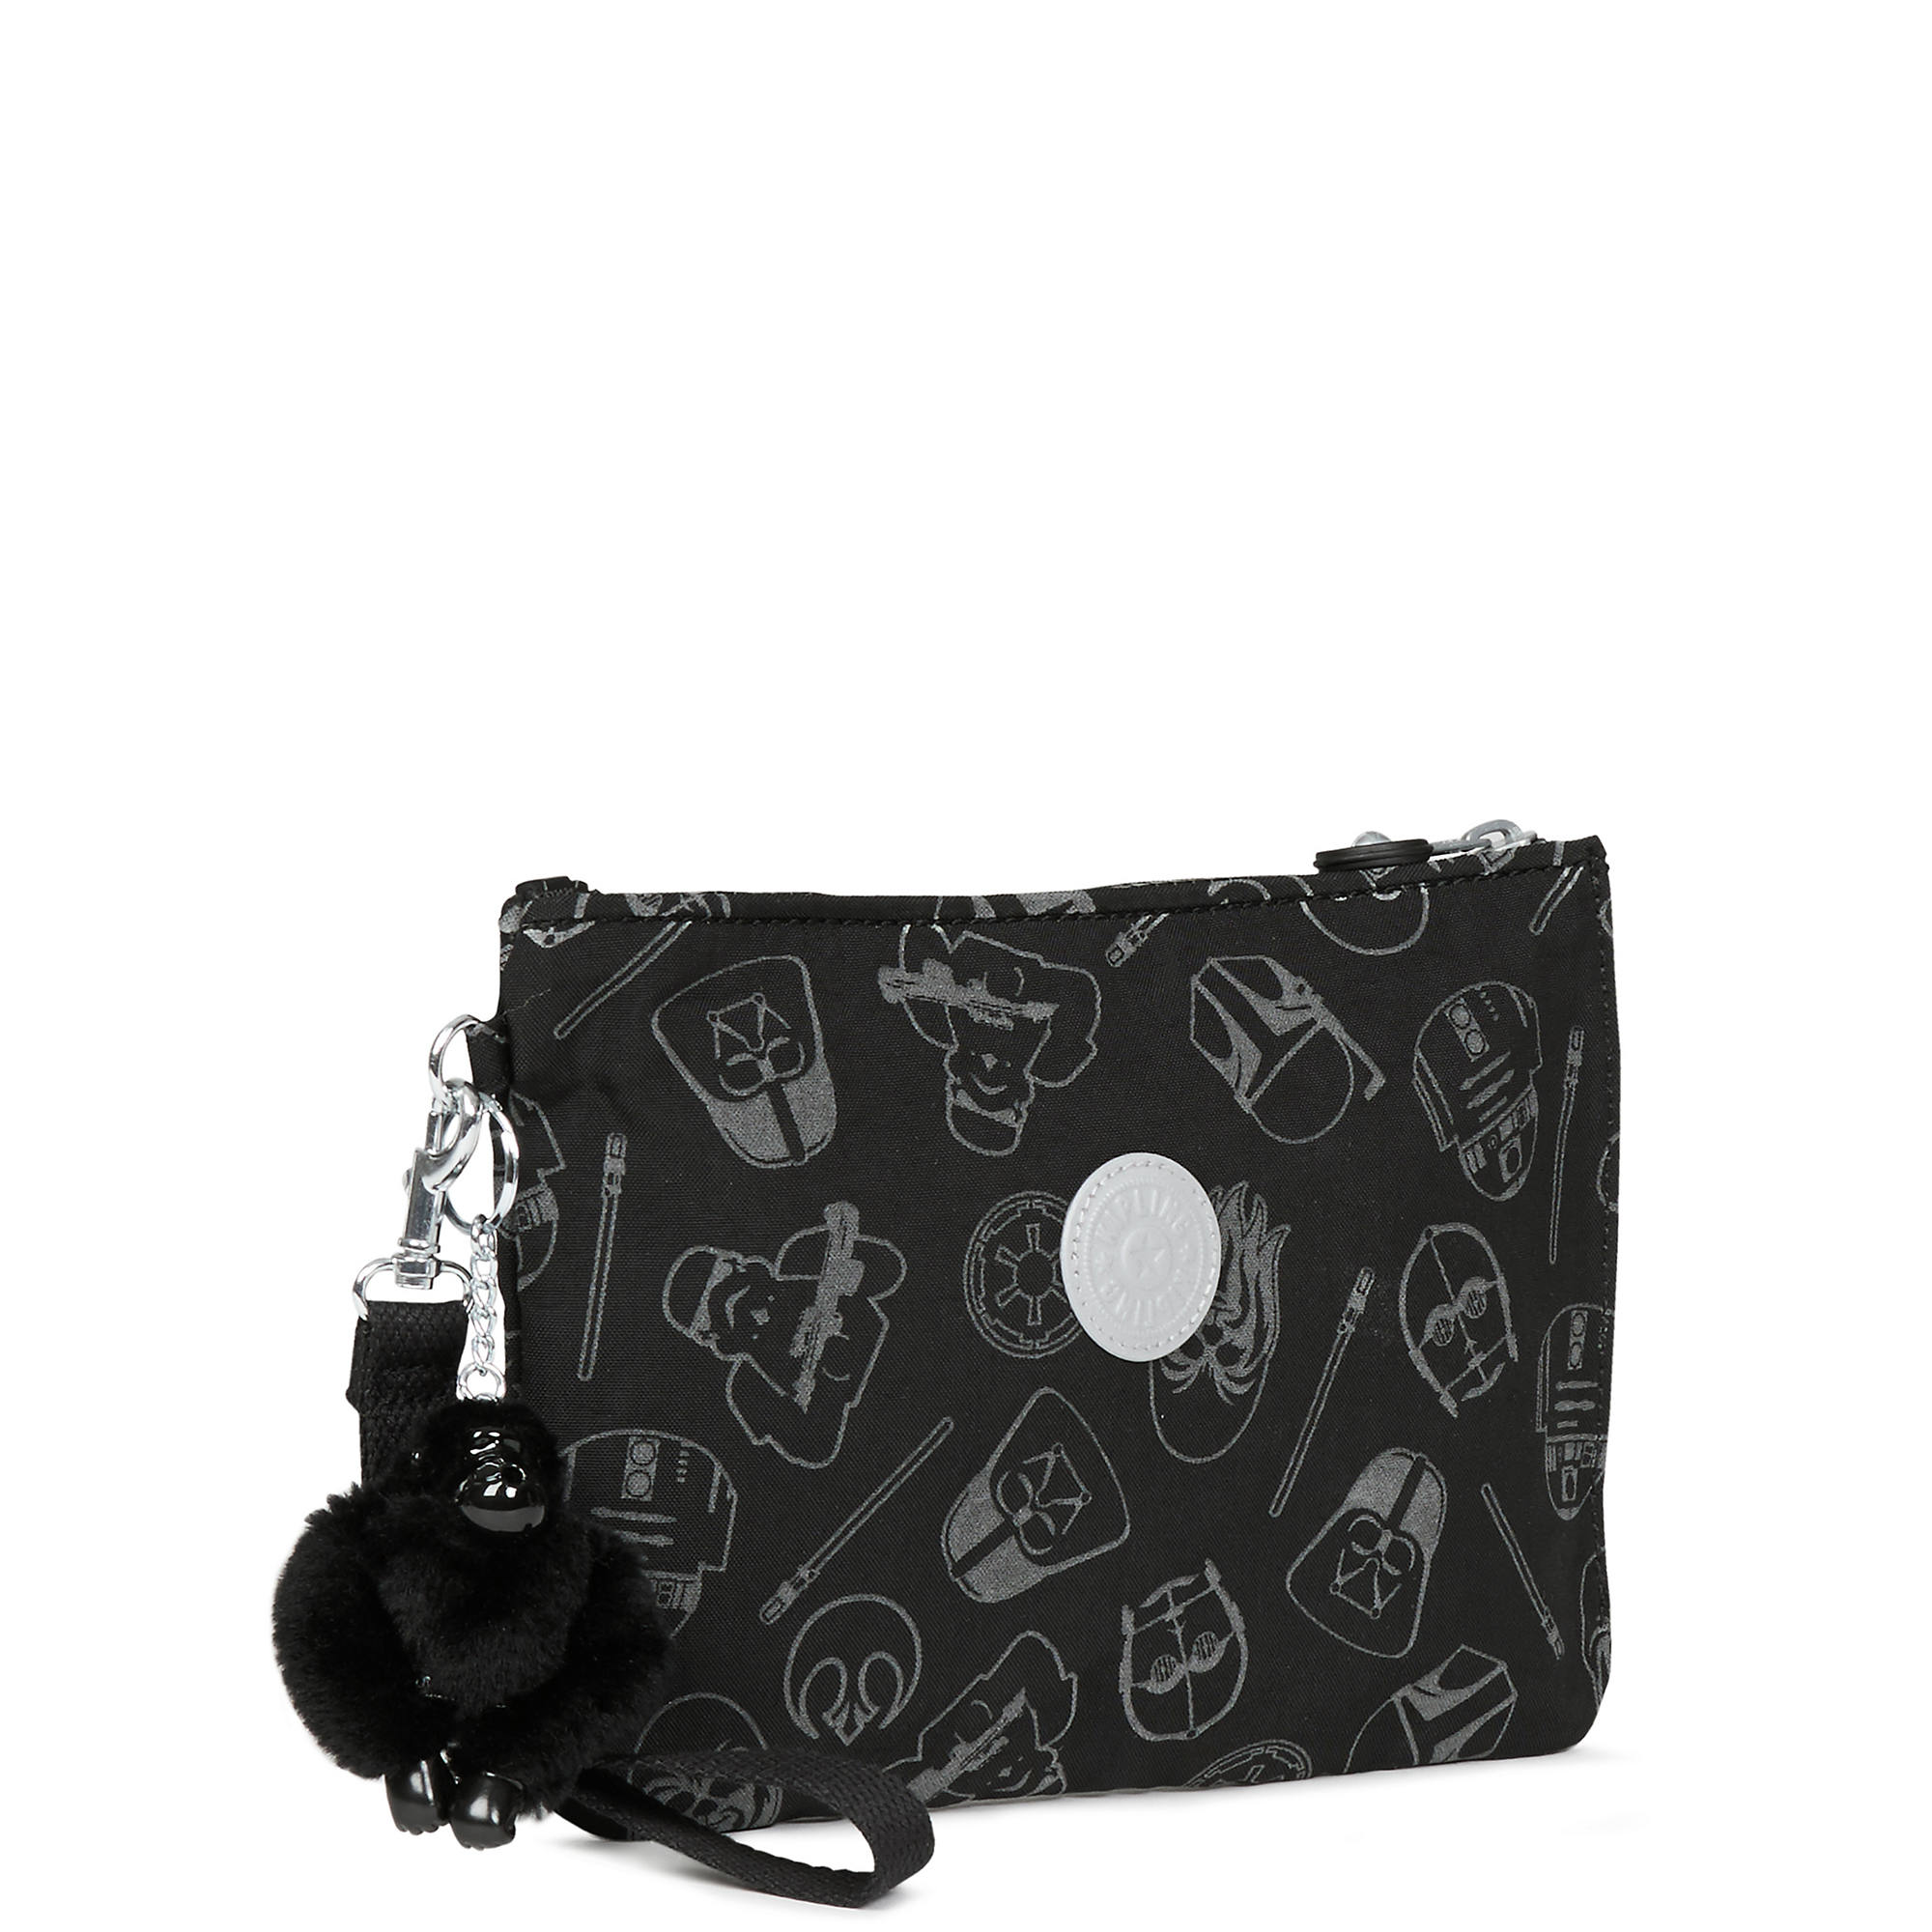 Kipling Star Wars Ellettronico Large Cosmetic Pouch